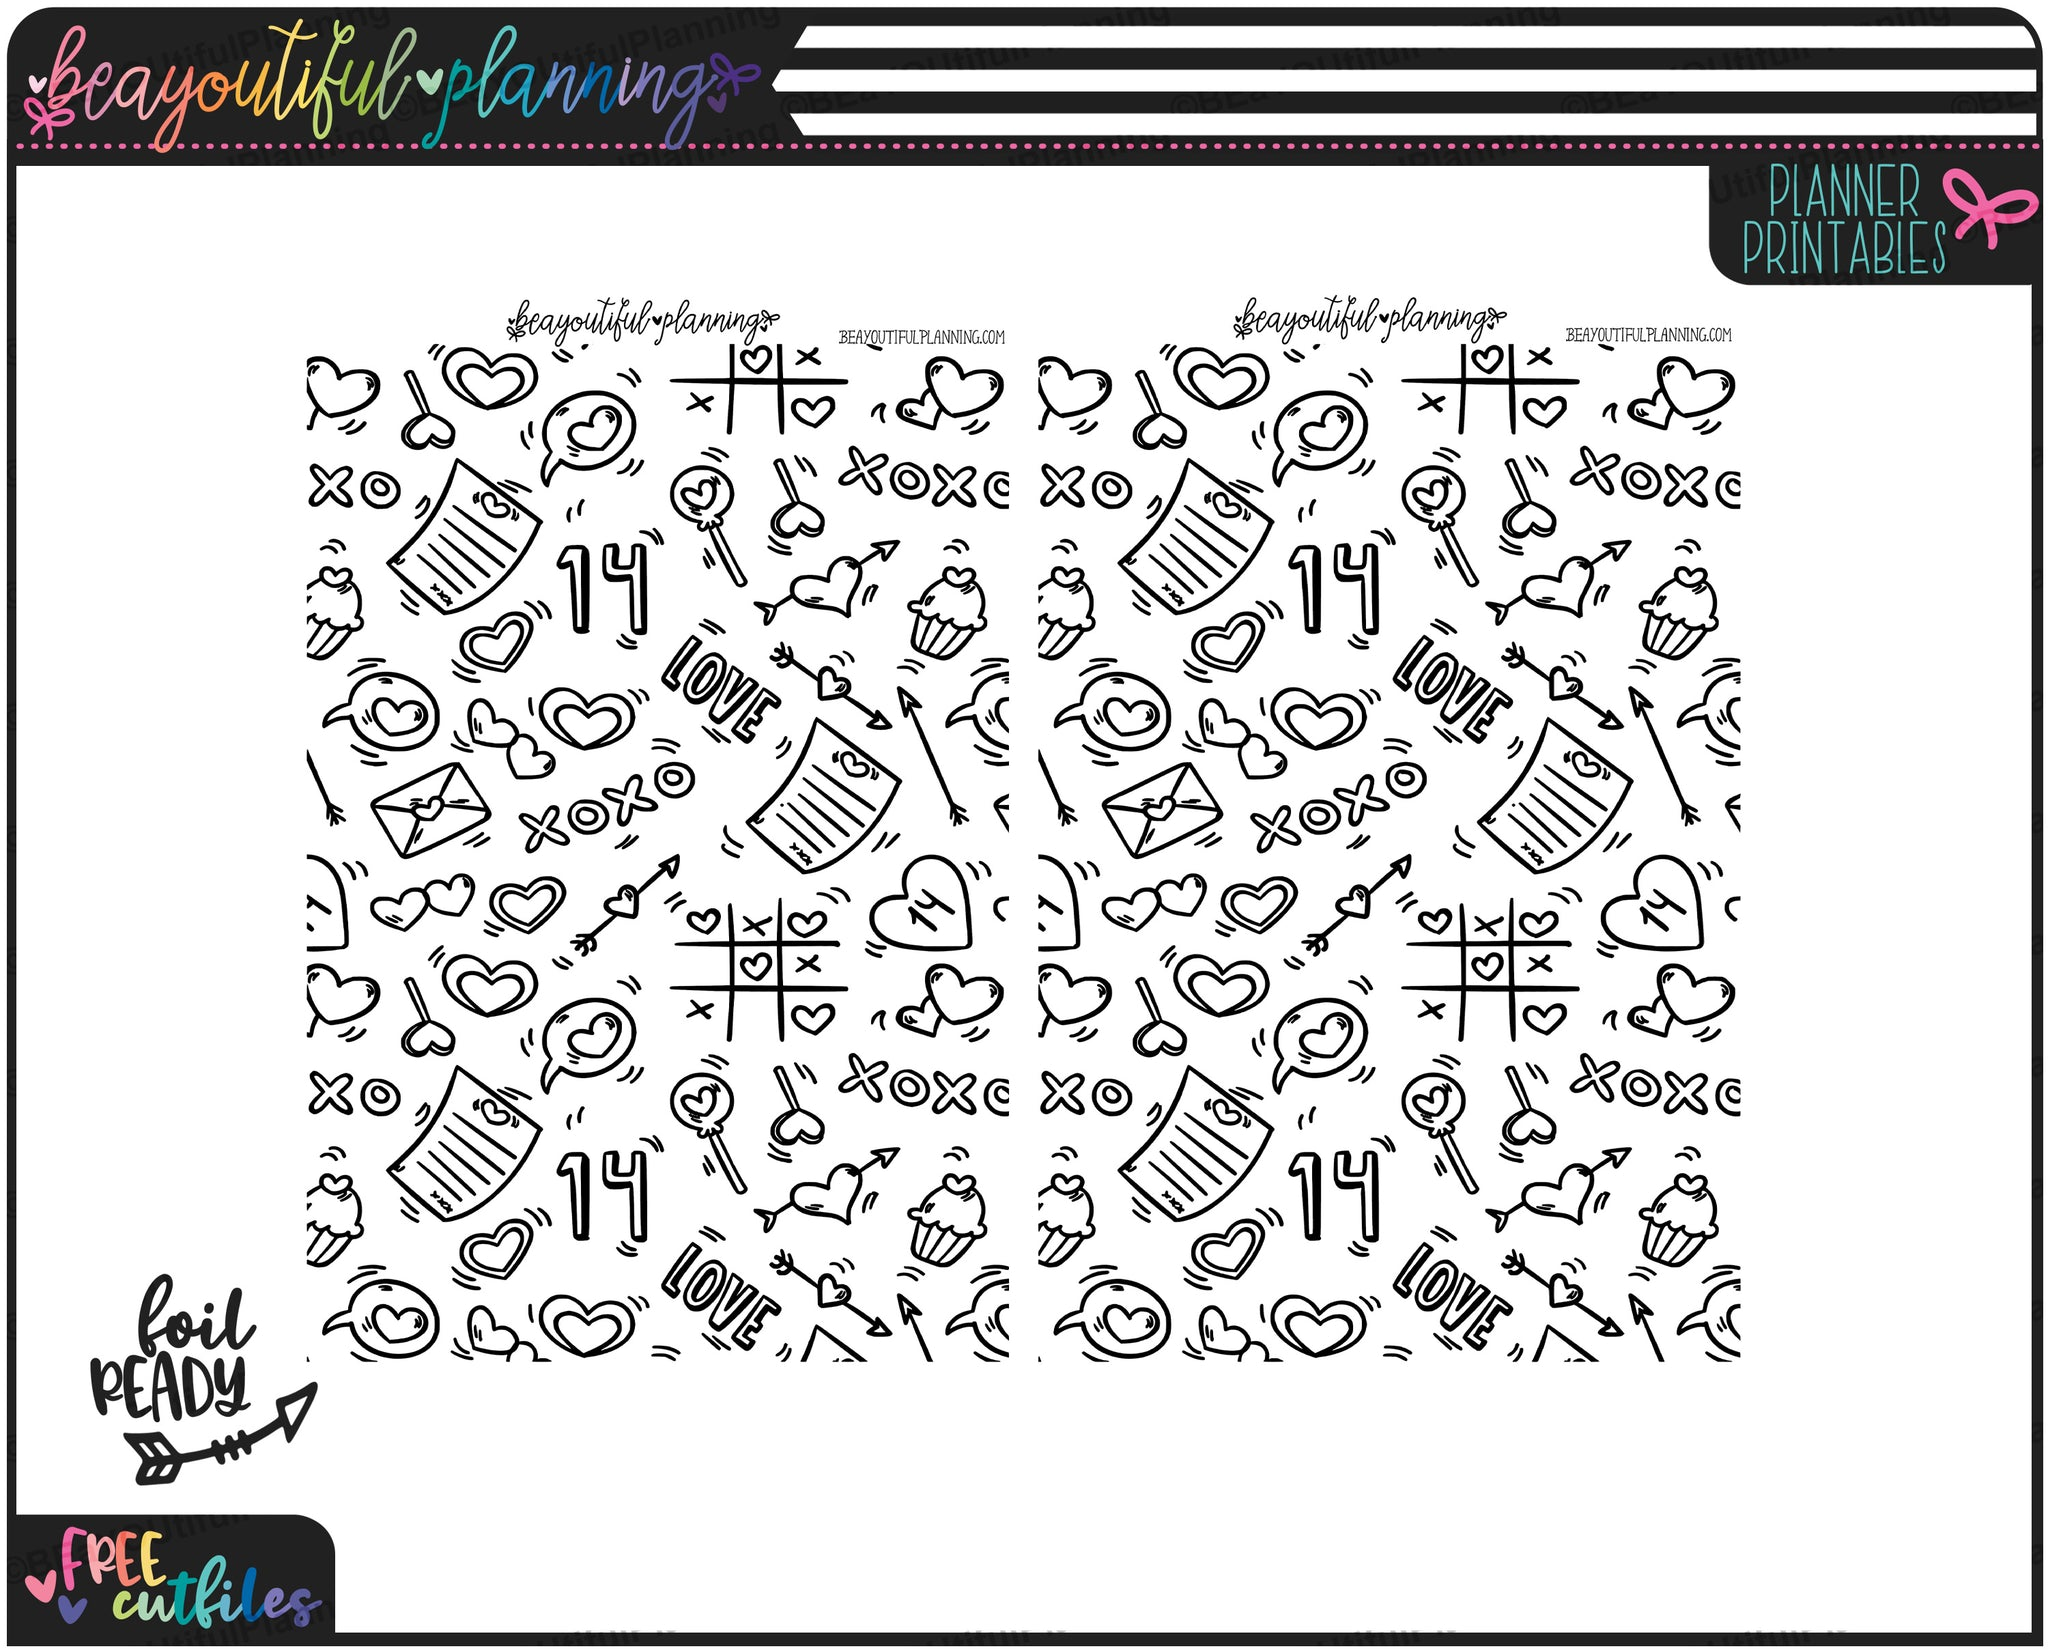 XOXO Underlays Foil Ready Overlay Printable